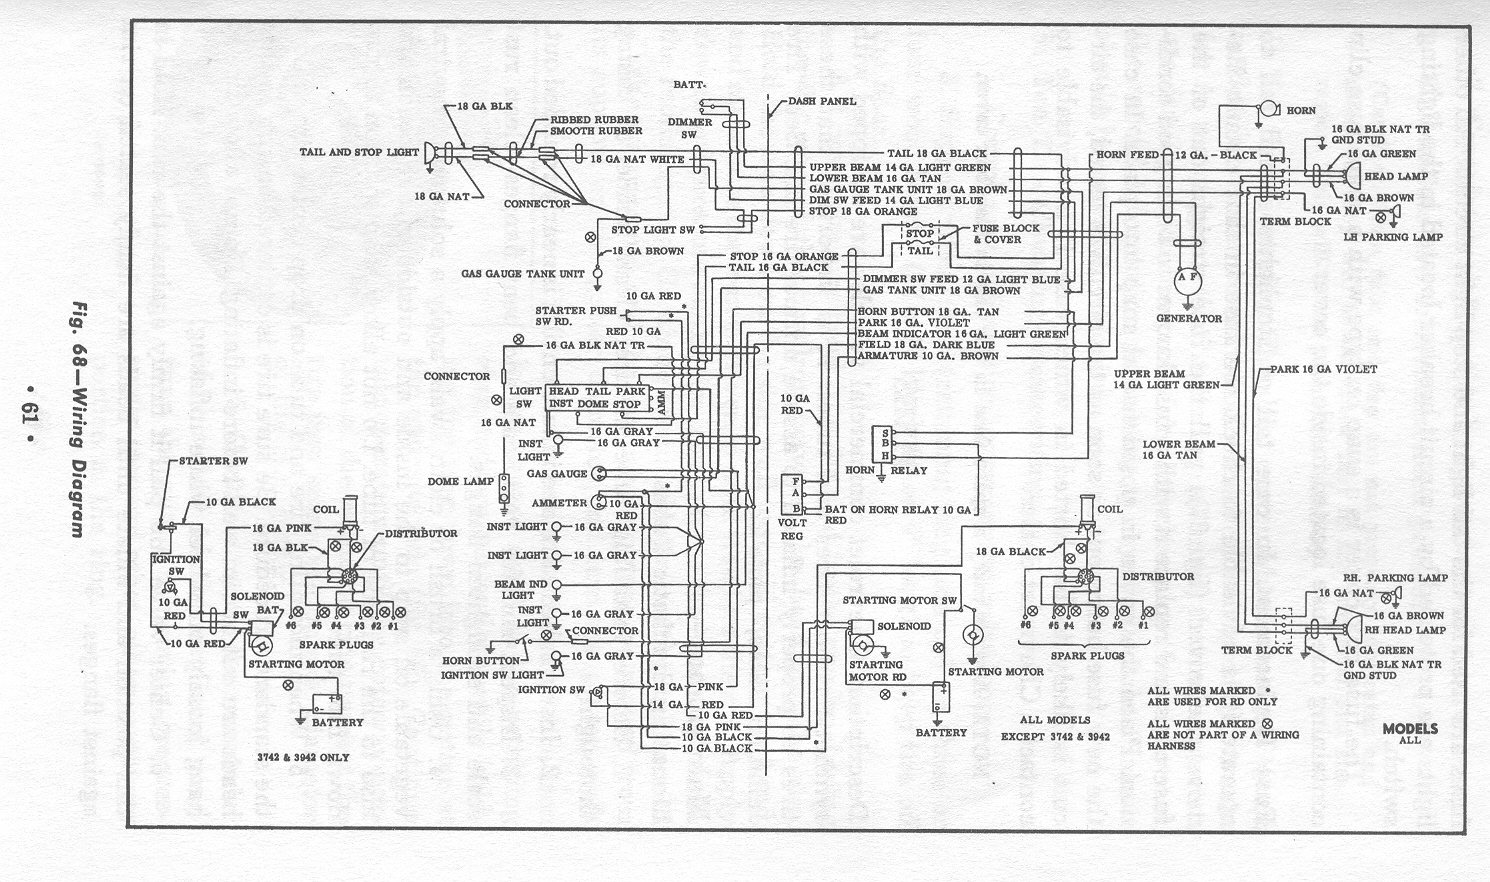 ChevyTruck 1954OperatorsManual_wiring_61 chevy truck 1965 c10 operator's manual index 83 chevy truck wiring diagram at fashall.co